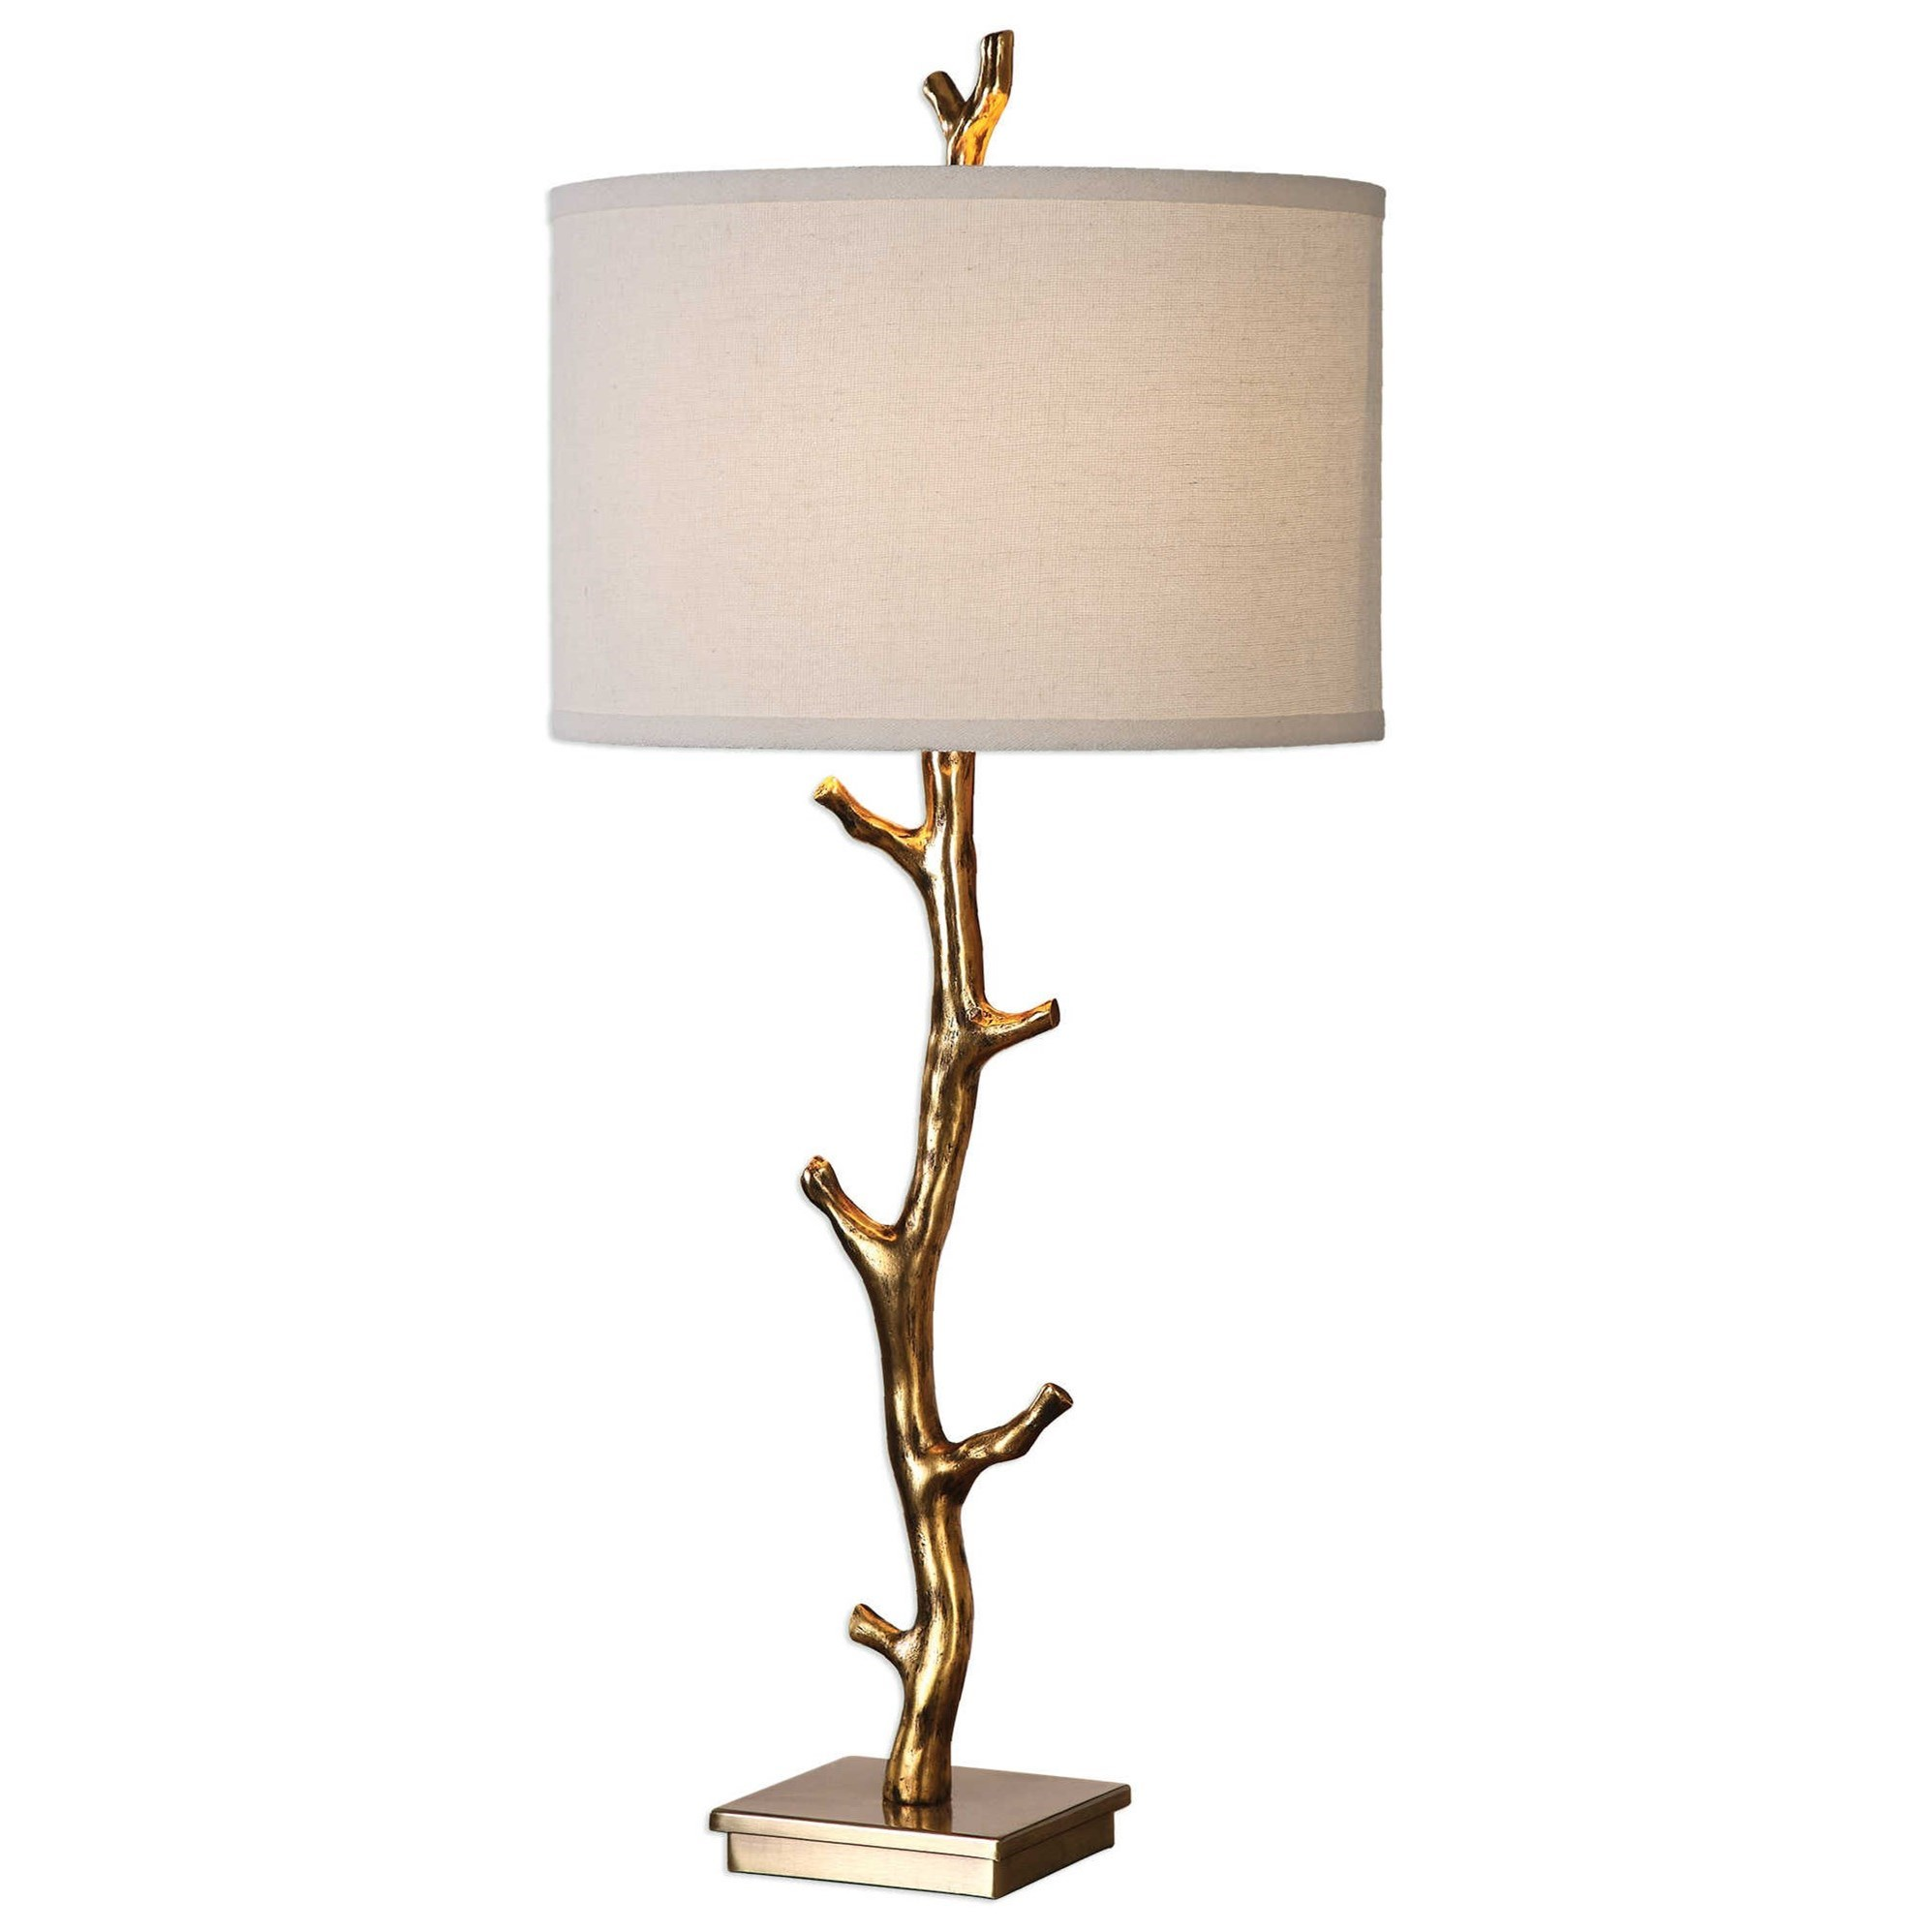 Javor Tree Branch Table Lamp